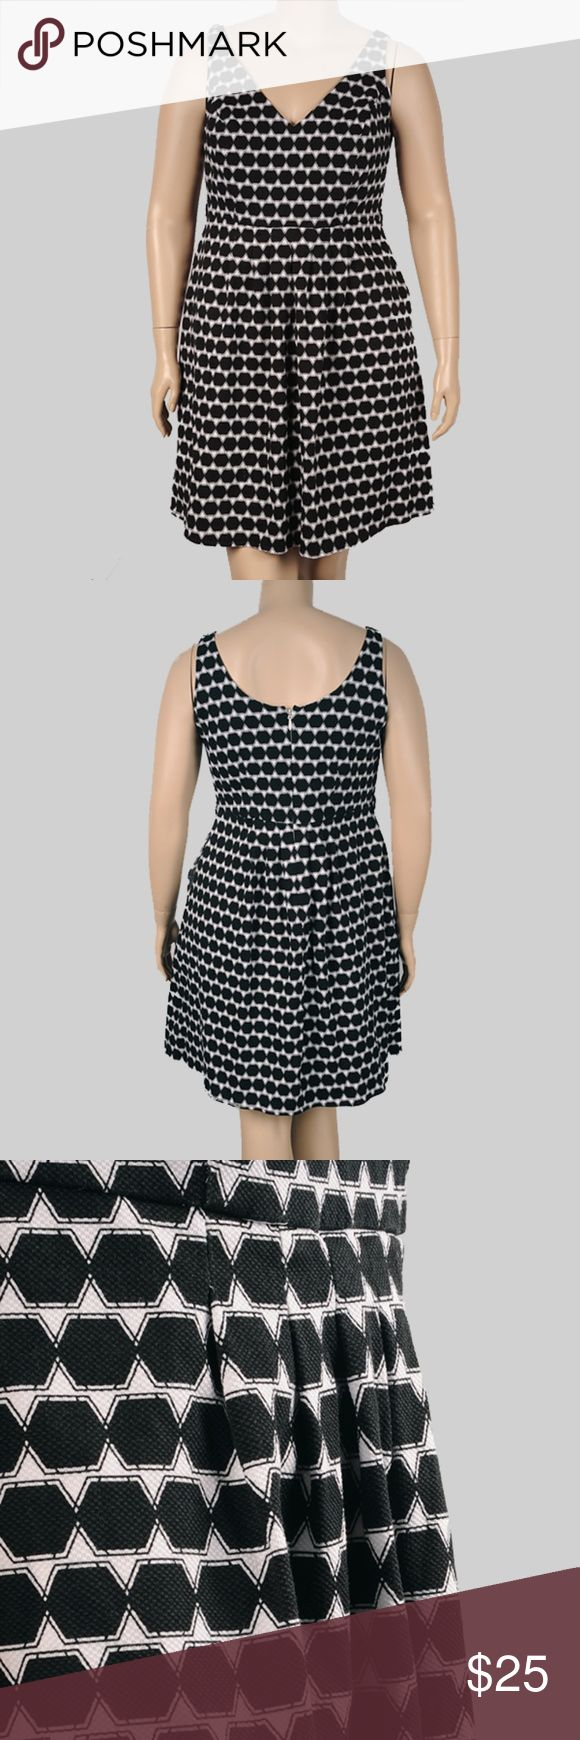 City Chic Miss Spotty Dress Size S/ city chic size 16 Stretch-cotton fit-and-flare dress with V-neck and scoopback, slight stretch, concealed back zip, allover geo print, fully lined.  Length 39in 99.06cm Waist 28in 71.12cm Bust 16in 40.64cm pair with a pair of shoes get a 15% discount City Chic Dresses